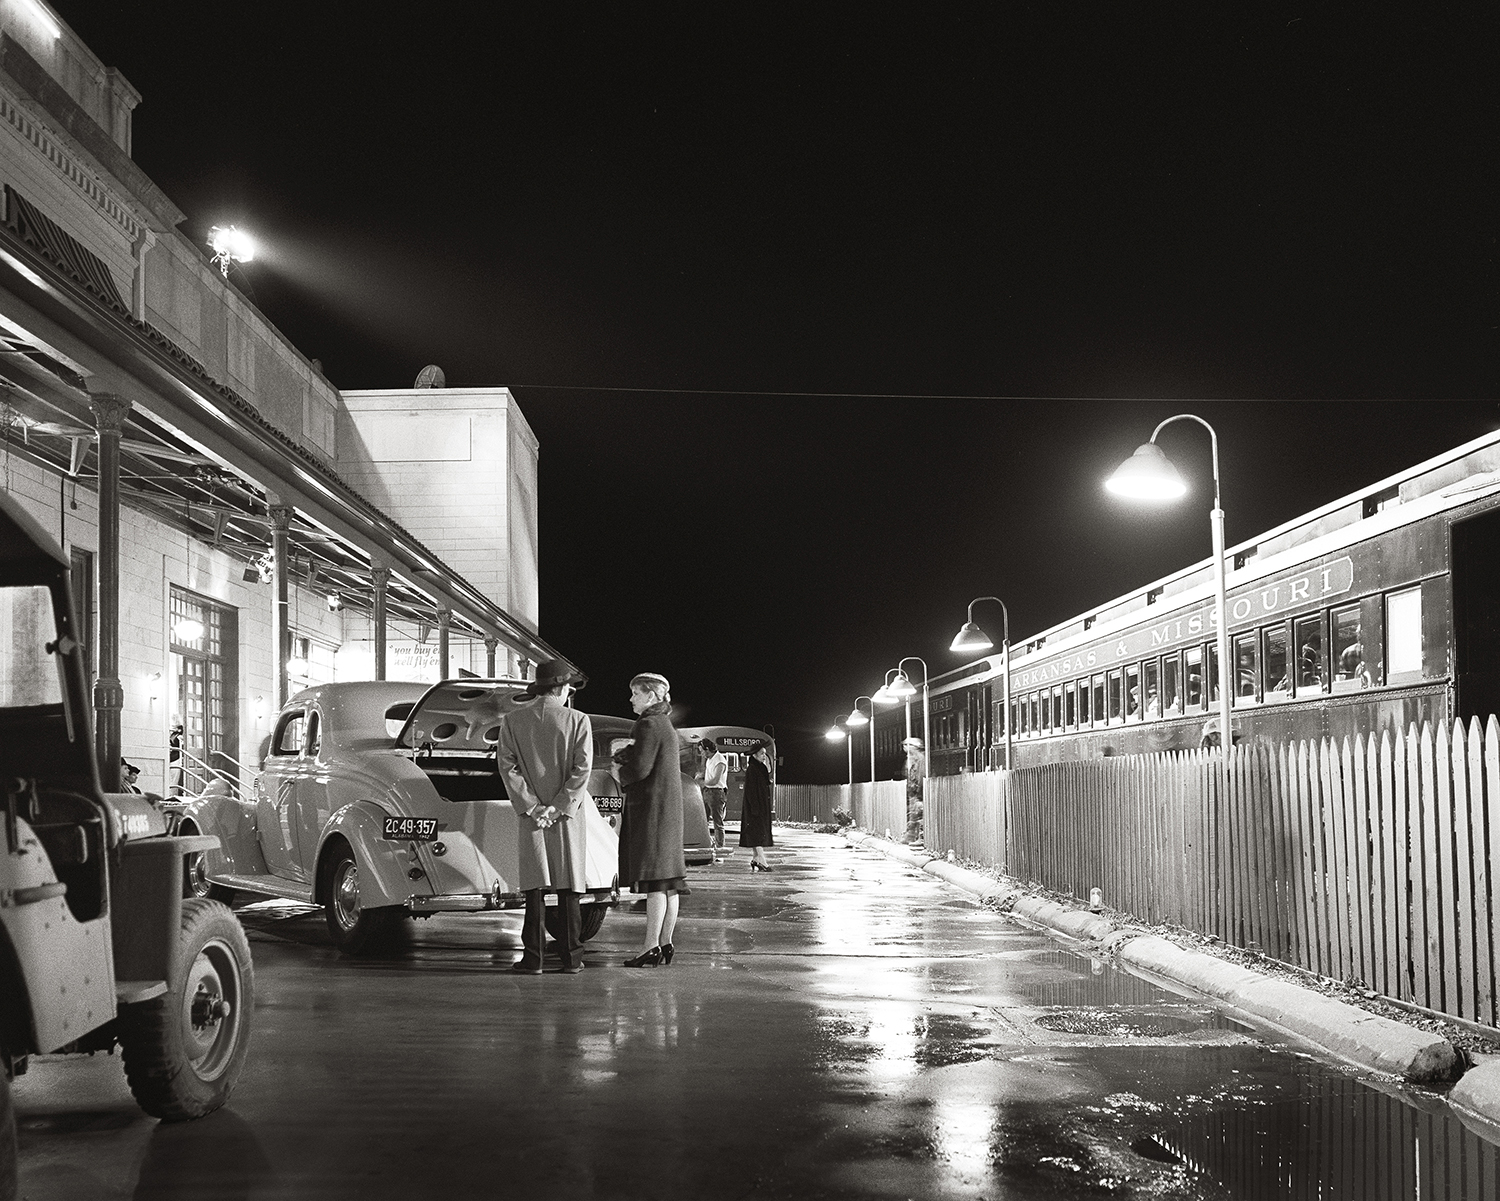 HBO pictures is filming railroad depot scenes at Fort Smith, Arkansas' Frisco Station in 1995. The pavement has been watered to increase specular highlights as actors in vintage clothing use a train operated by the Arkansas and Missouri Railroad